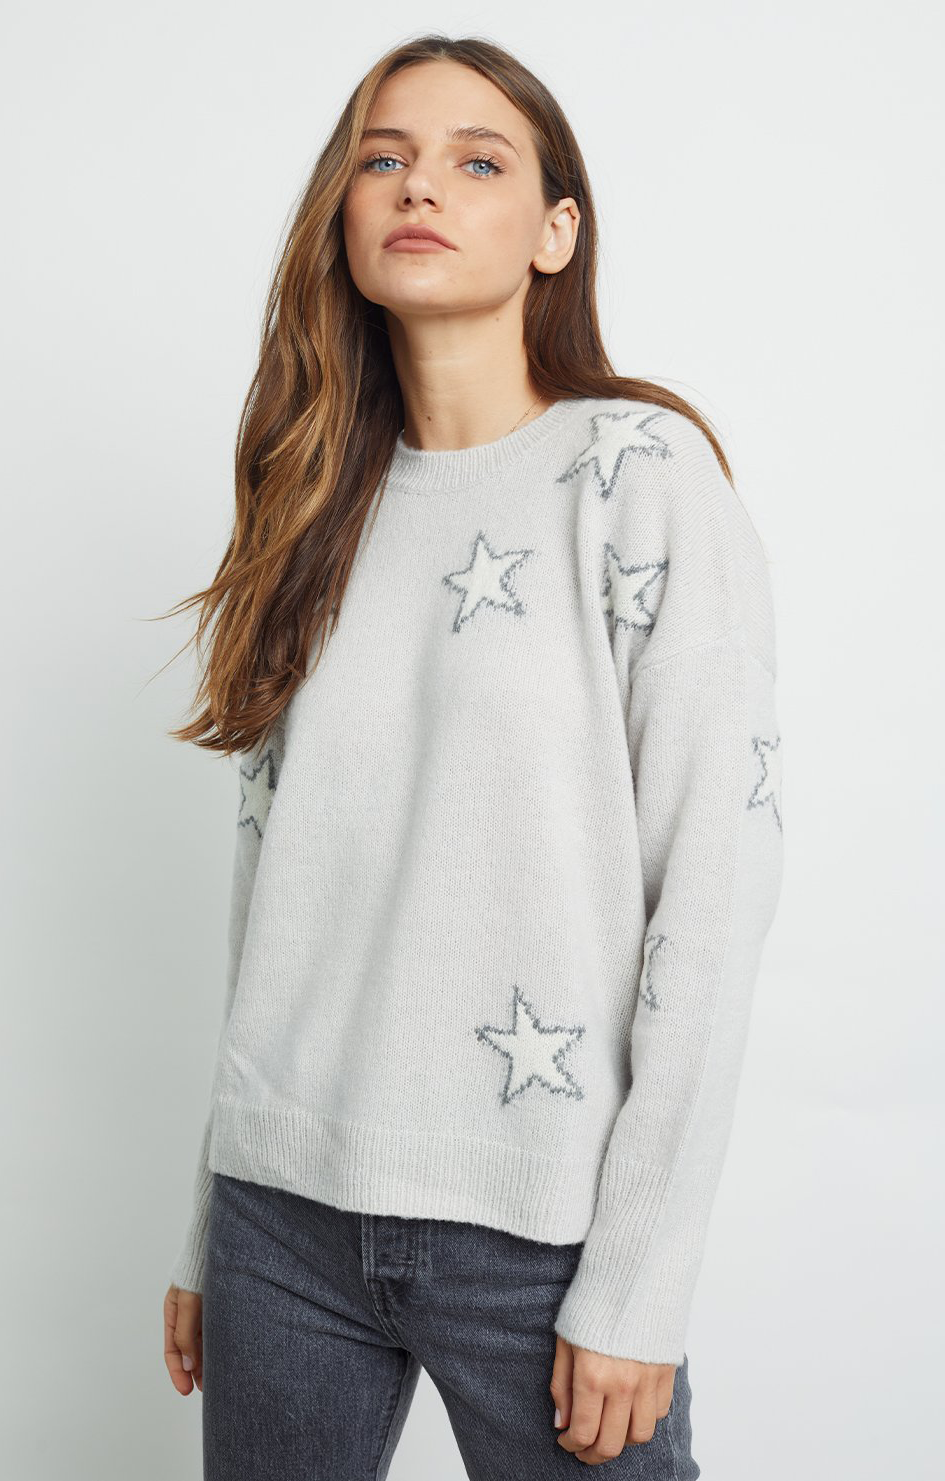 Virgo Sweater - Grey White Star